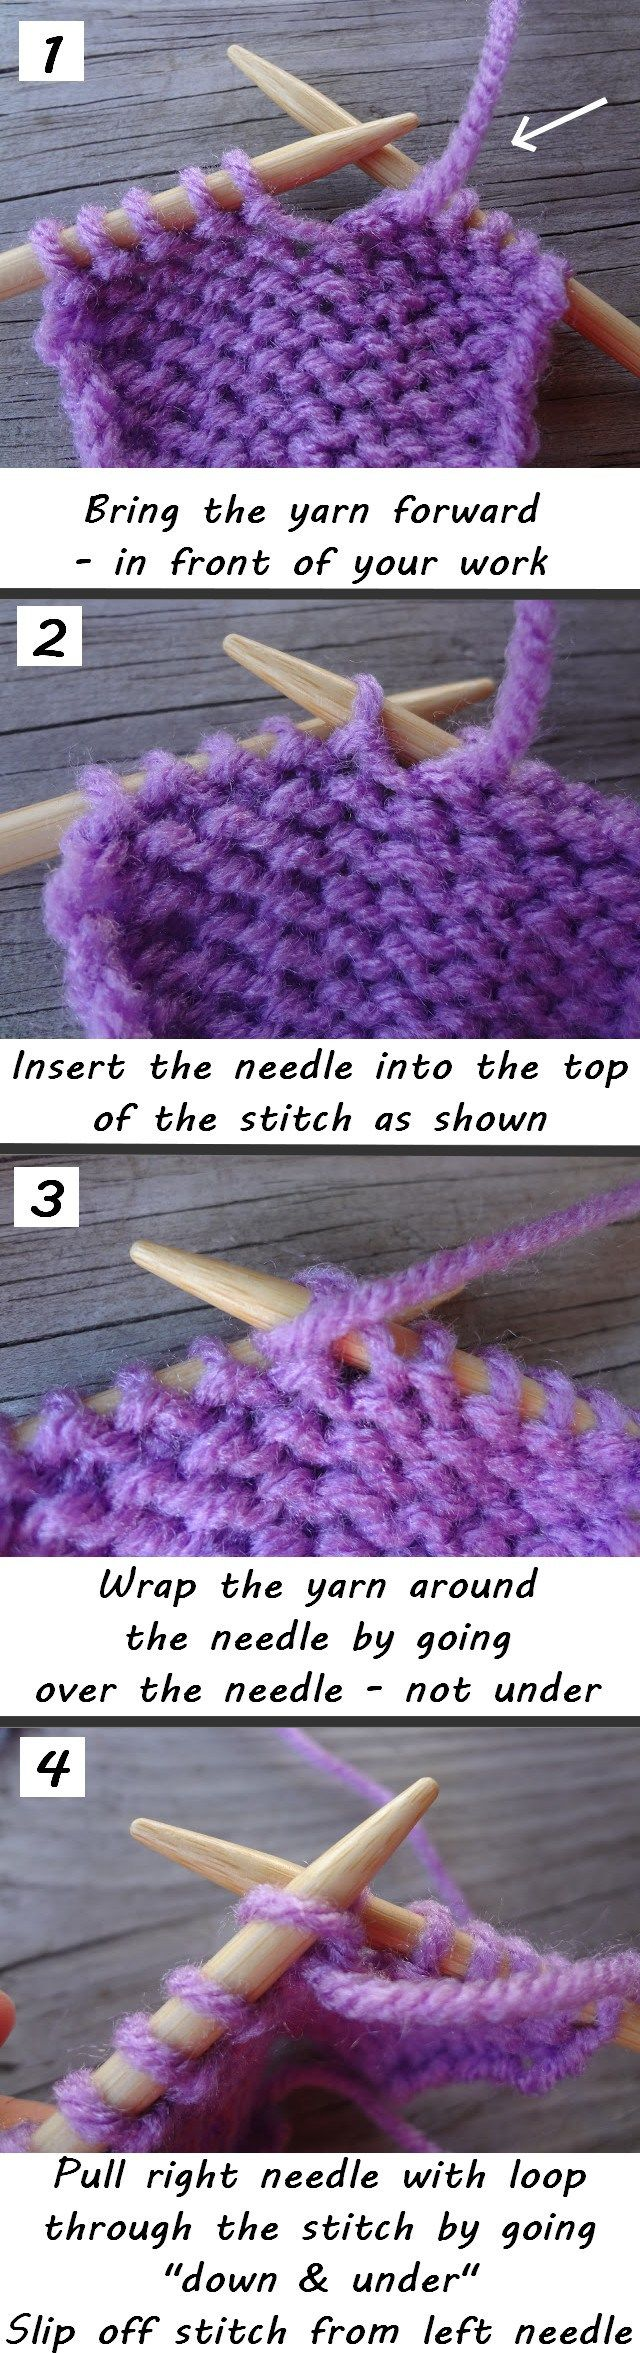 How to purl - a tutorial on how to knit the purl stitch, often used in a variety of knitting patterns.